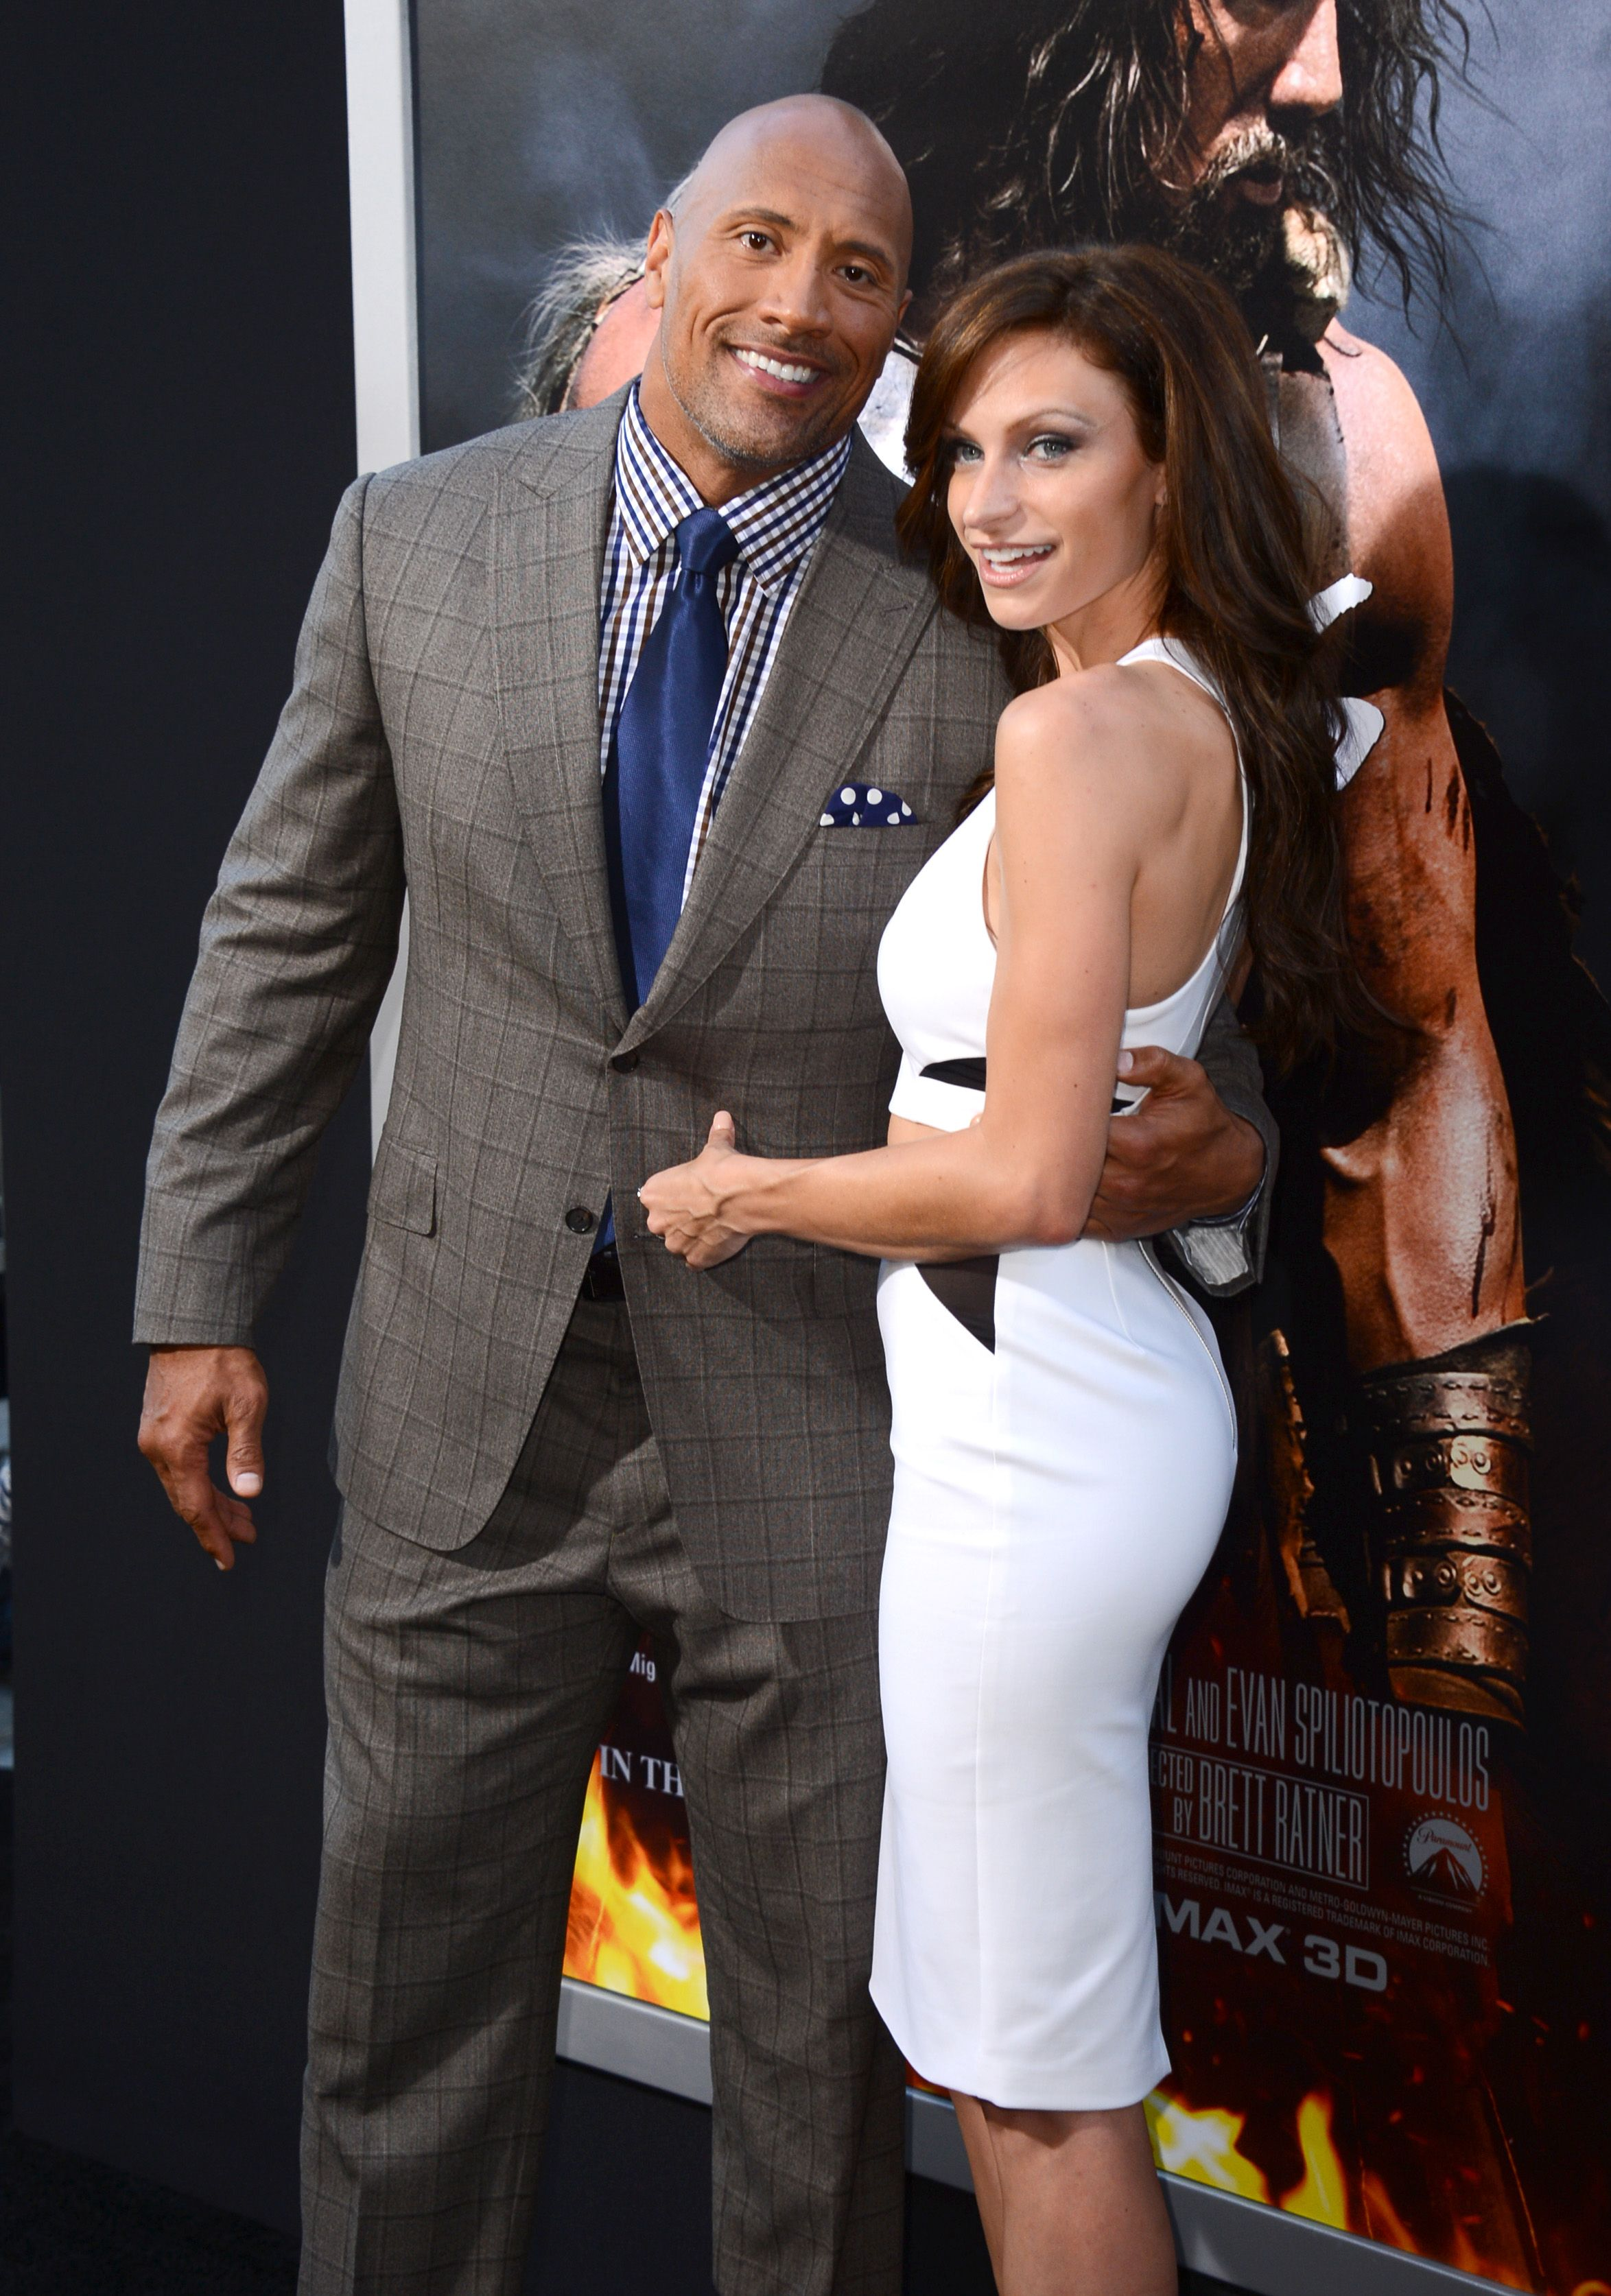 lauren hashian Lauren Hashian looked great at the Hercules Premiere on